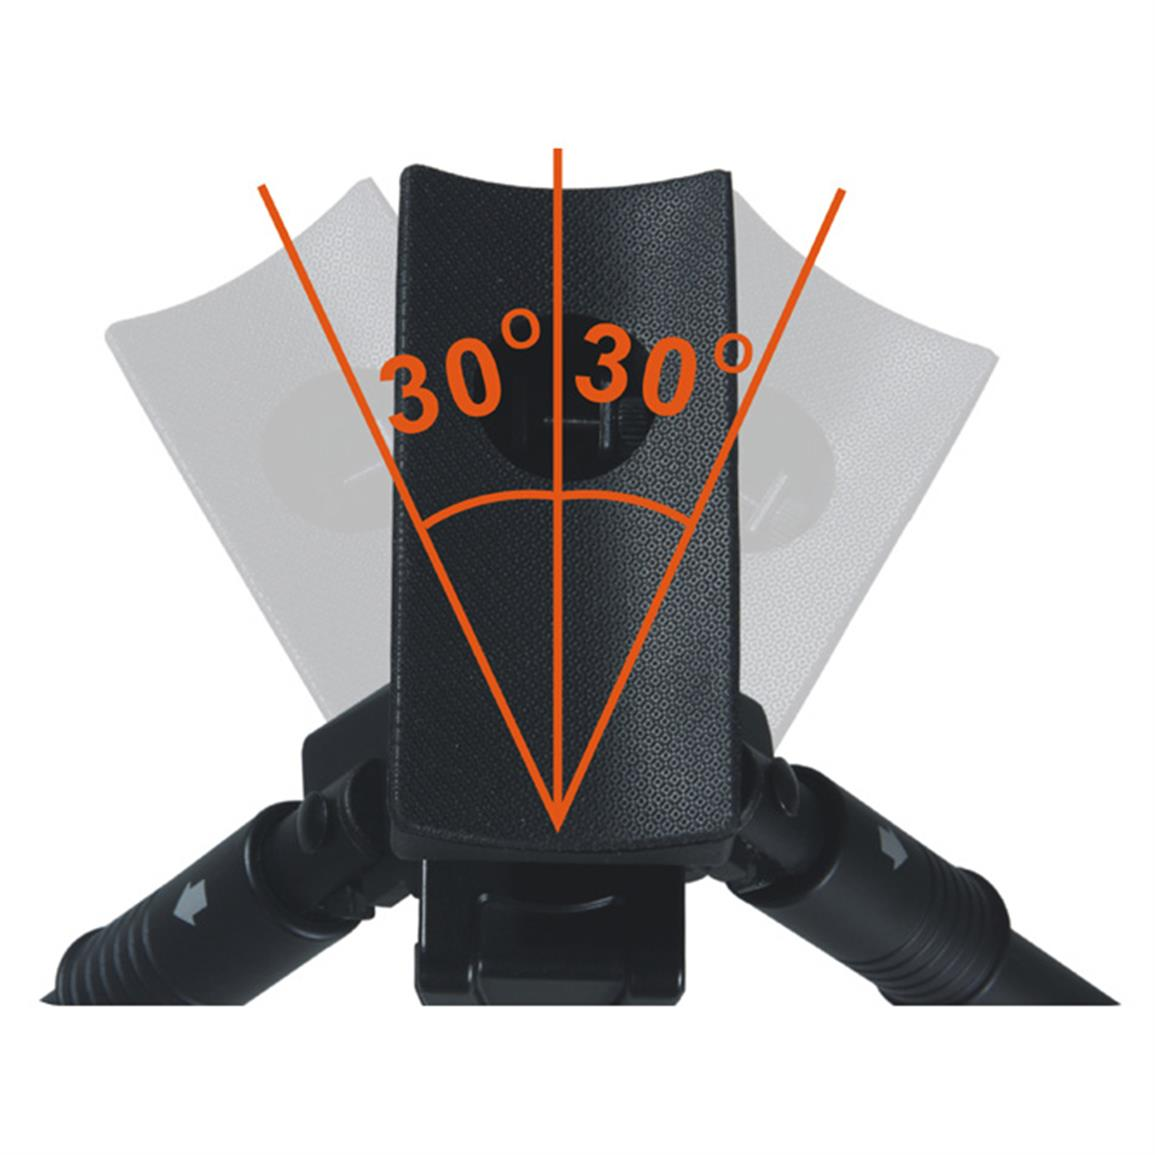 Has a pivot tilt of 0 to 5° and a -30° to 30° swing angle